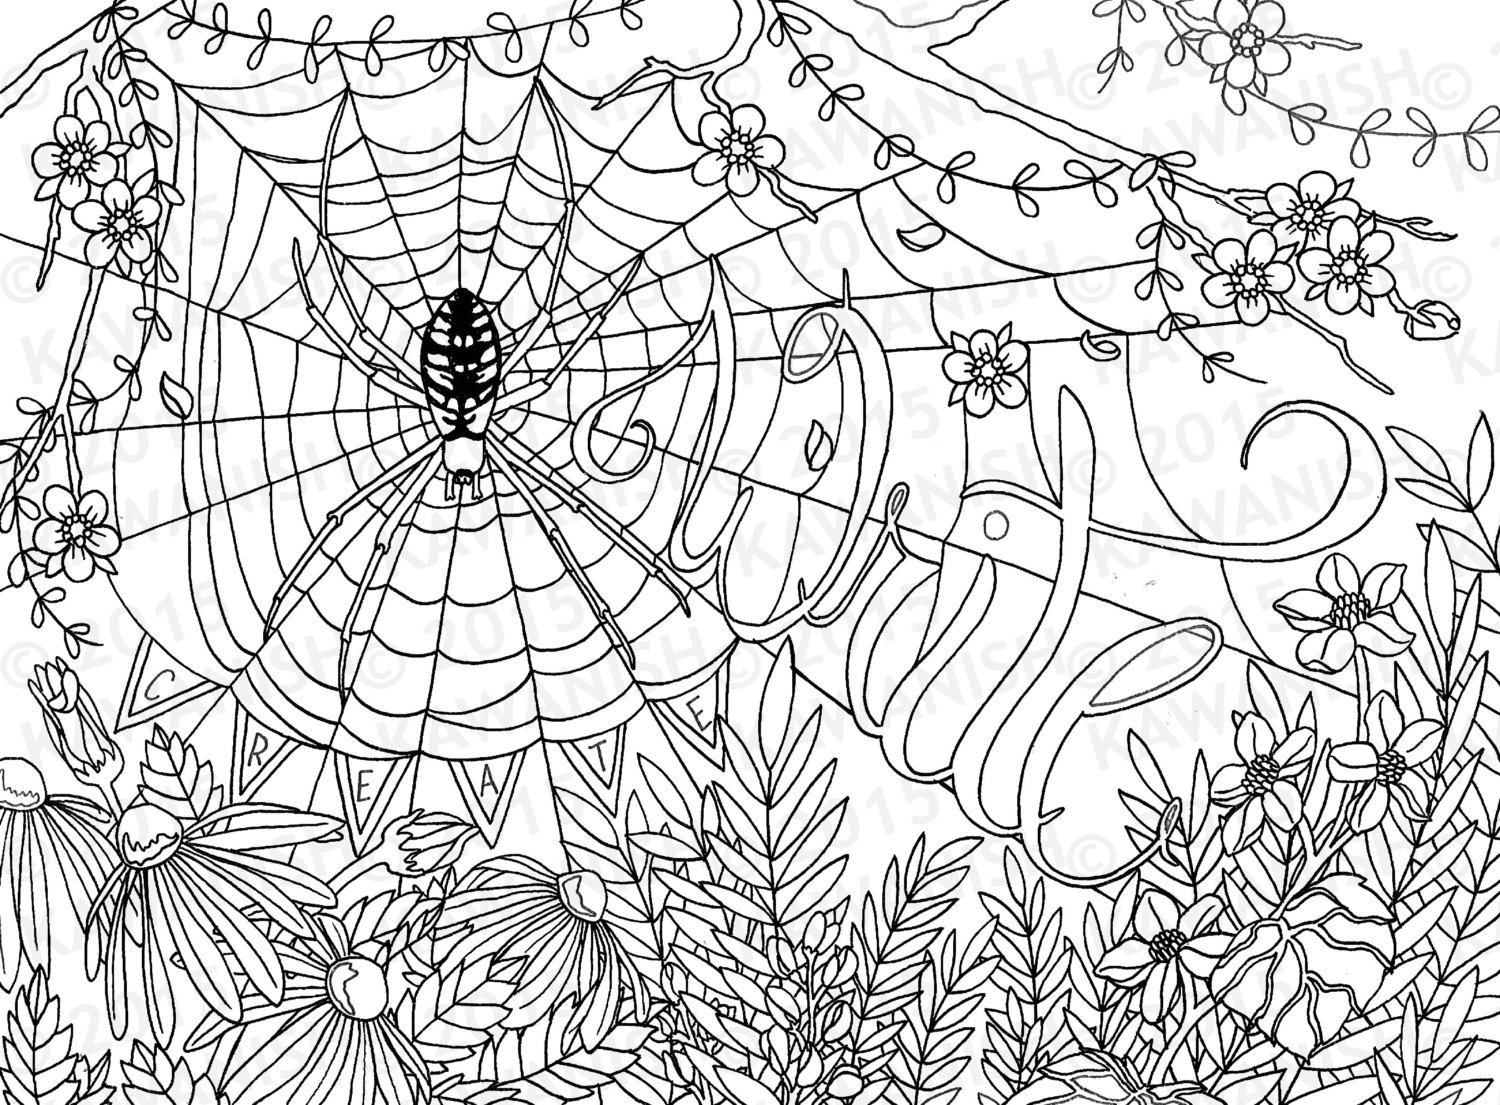 1500x1105 Creative Writing Spider Flower Adult Coloring Page Gift Wall